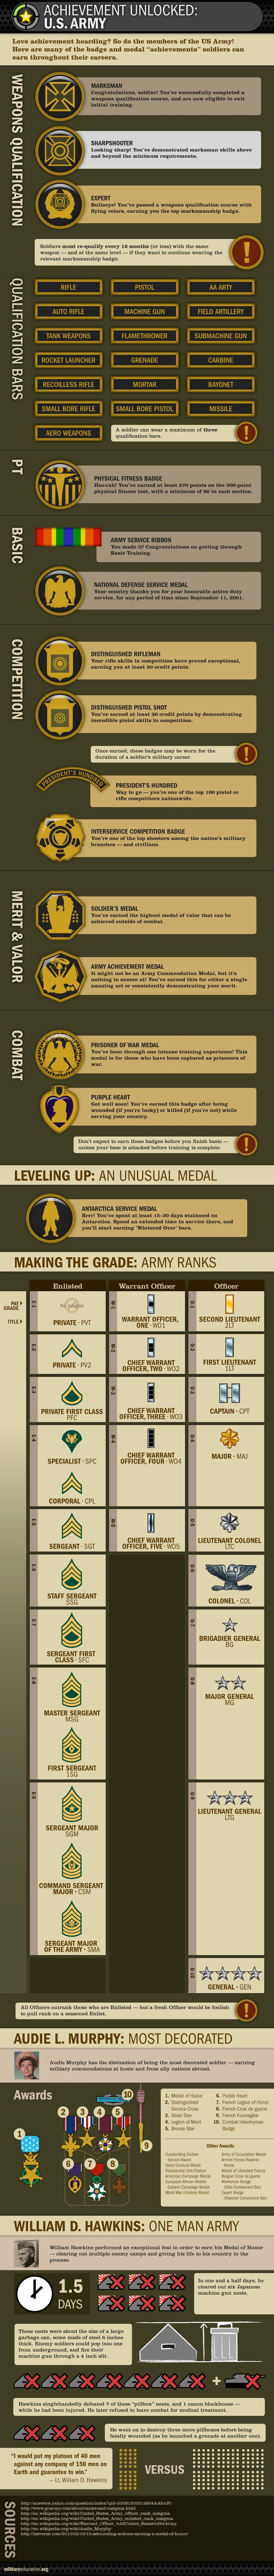 A rubric for the Army - what to strive for.... Do your students know what they are striving for?